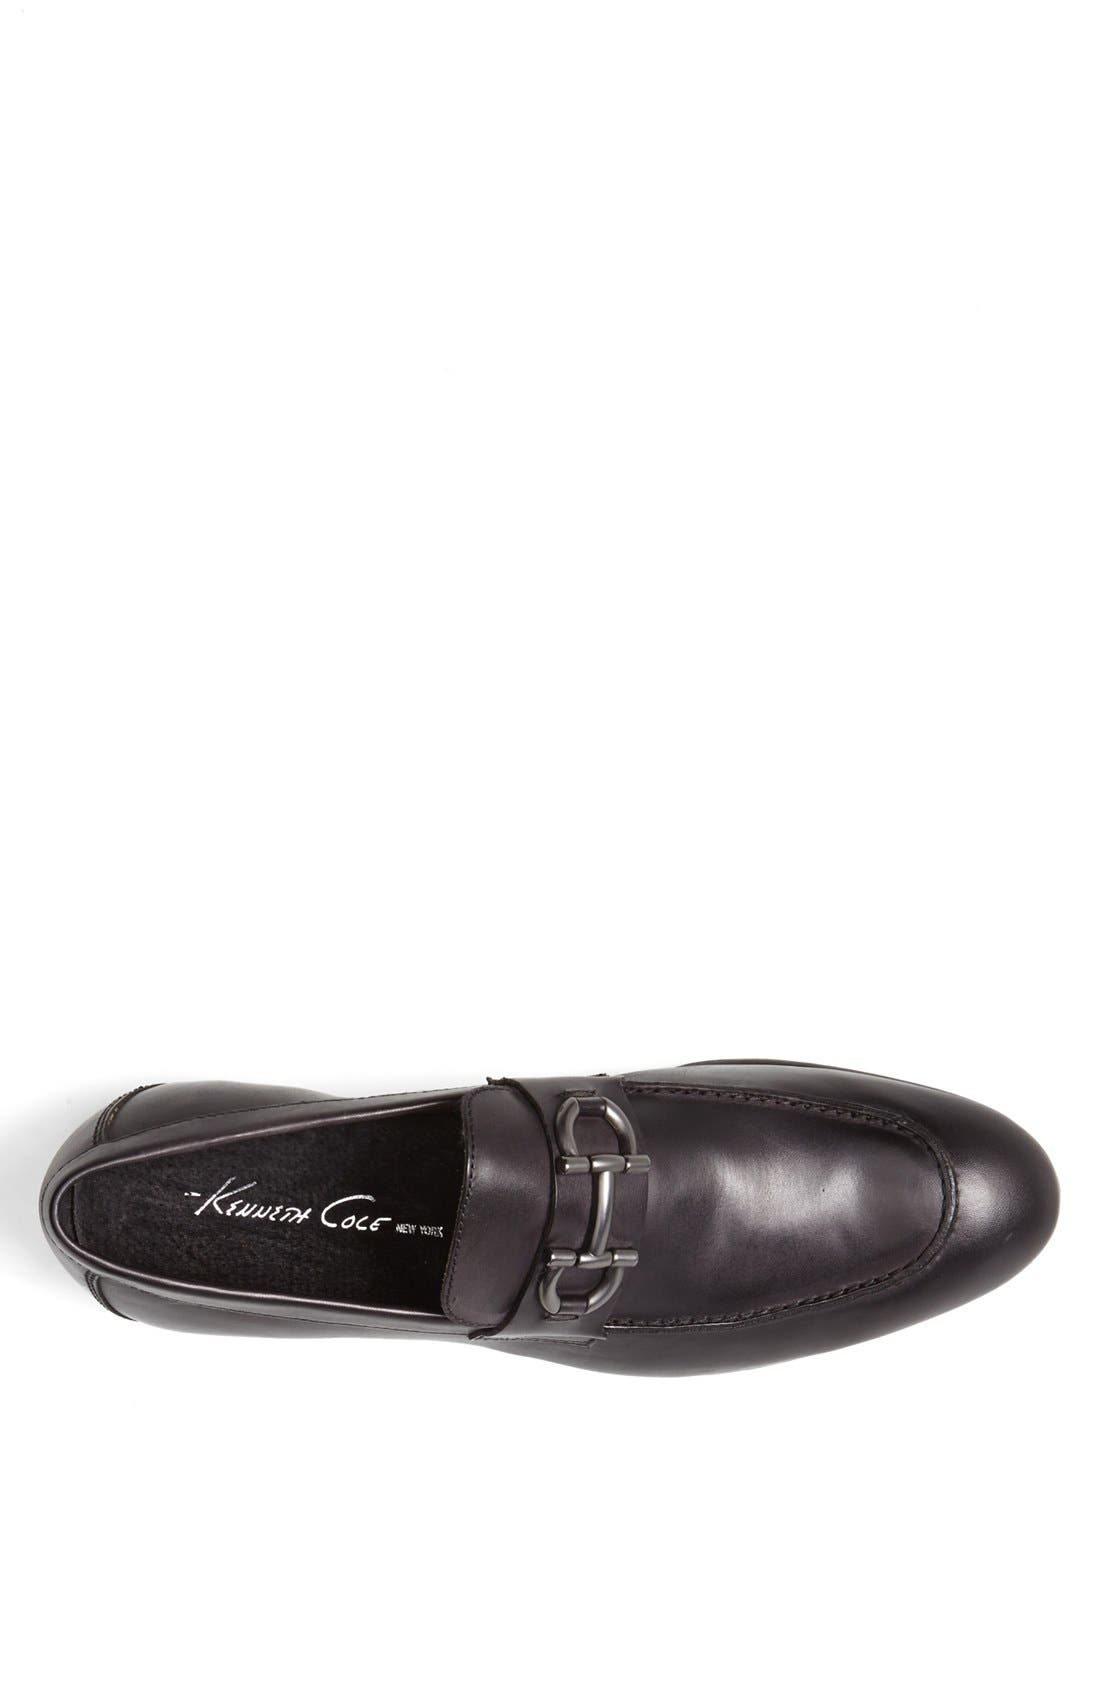 Alternate Image 3  - Kenneth Cole New York 'Heat It Up' Bit Loafer